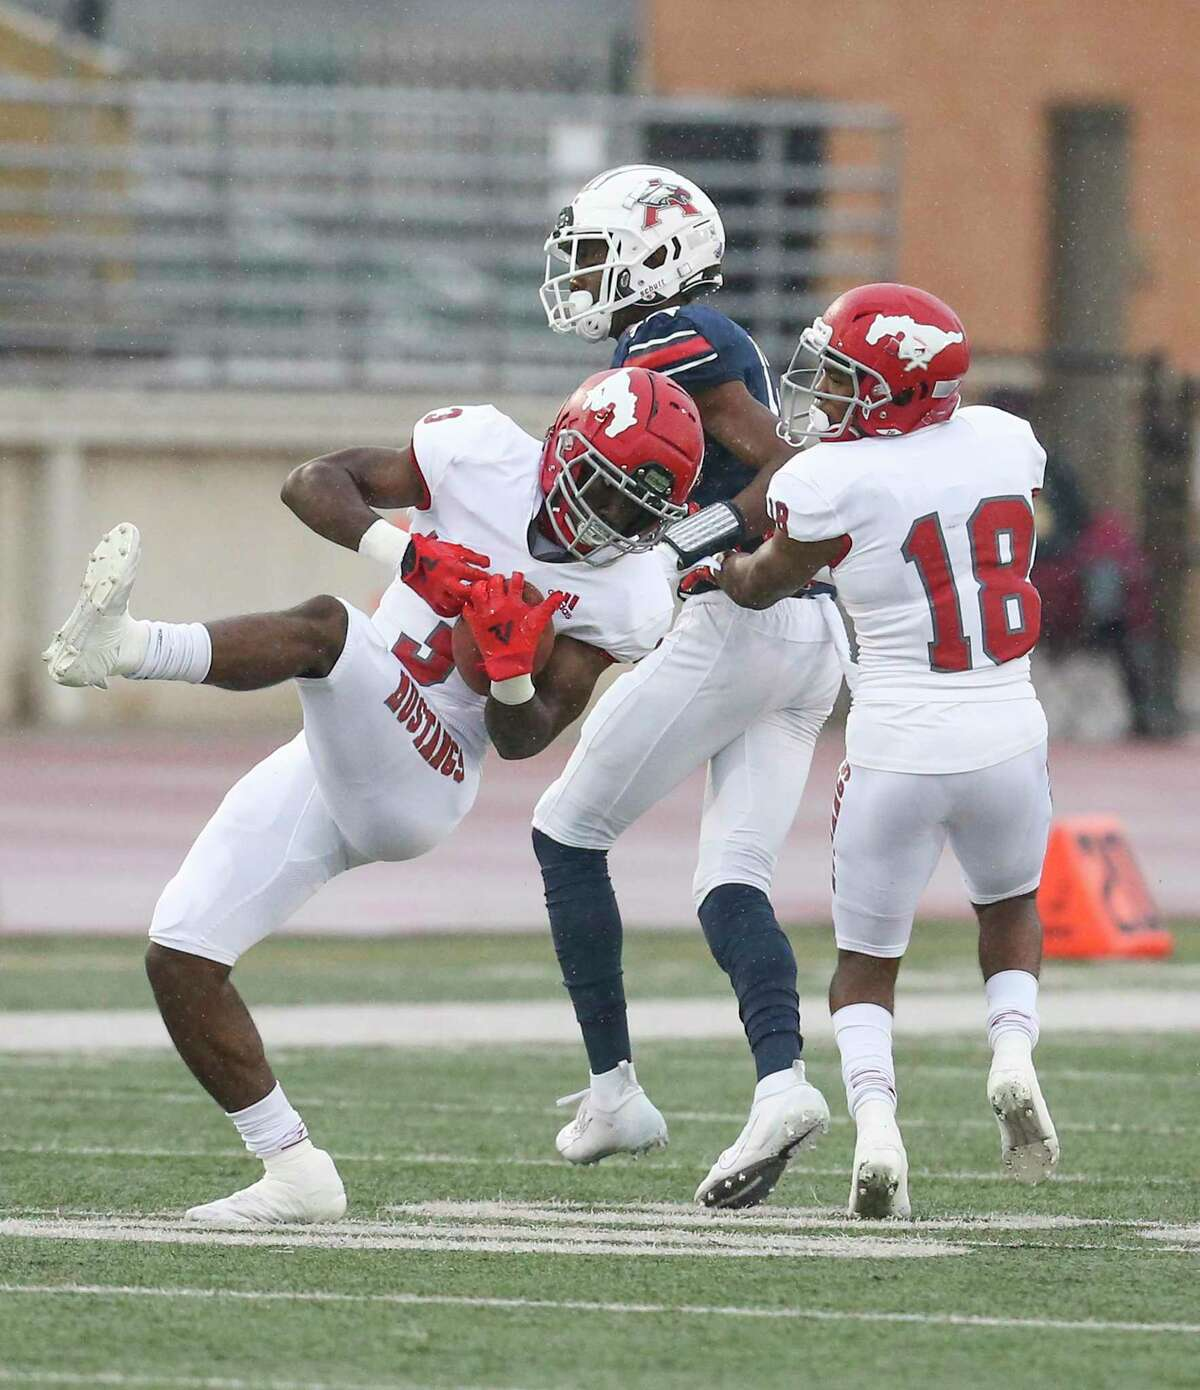 North Shore Mustangs cornerback Denver Harris (3) intercepts the ball against Atascocita Eagles wide receiver Landen King (13) in the first quarter in a high school football game on November 27, 2020 at Turner Stadium in Humble, TX.